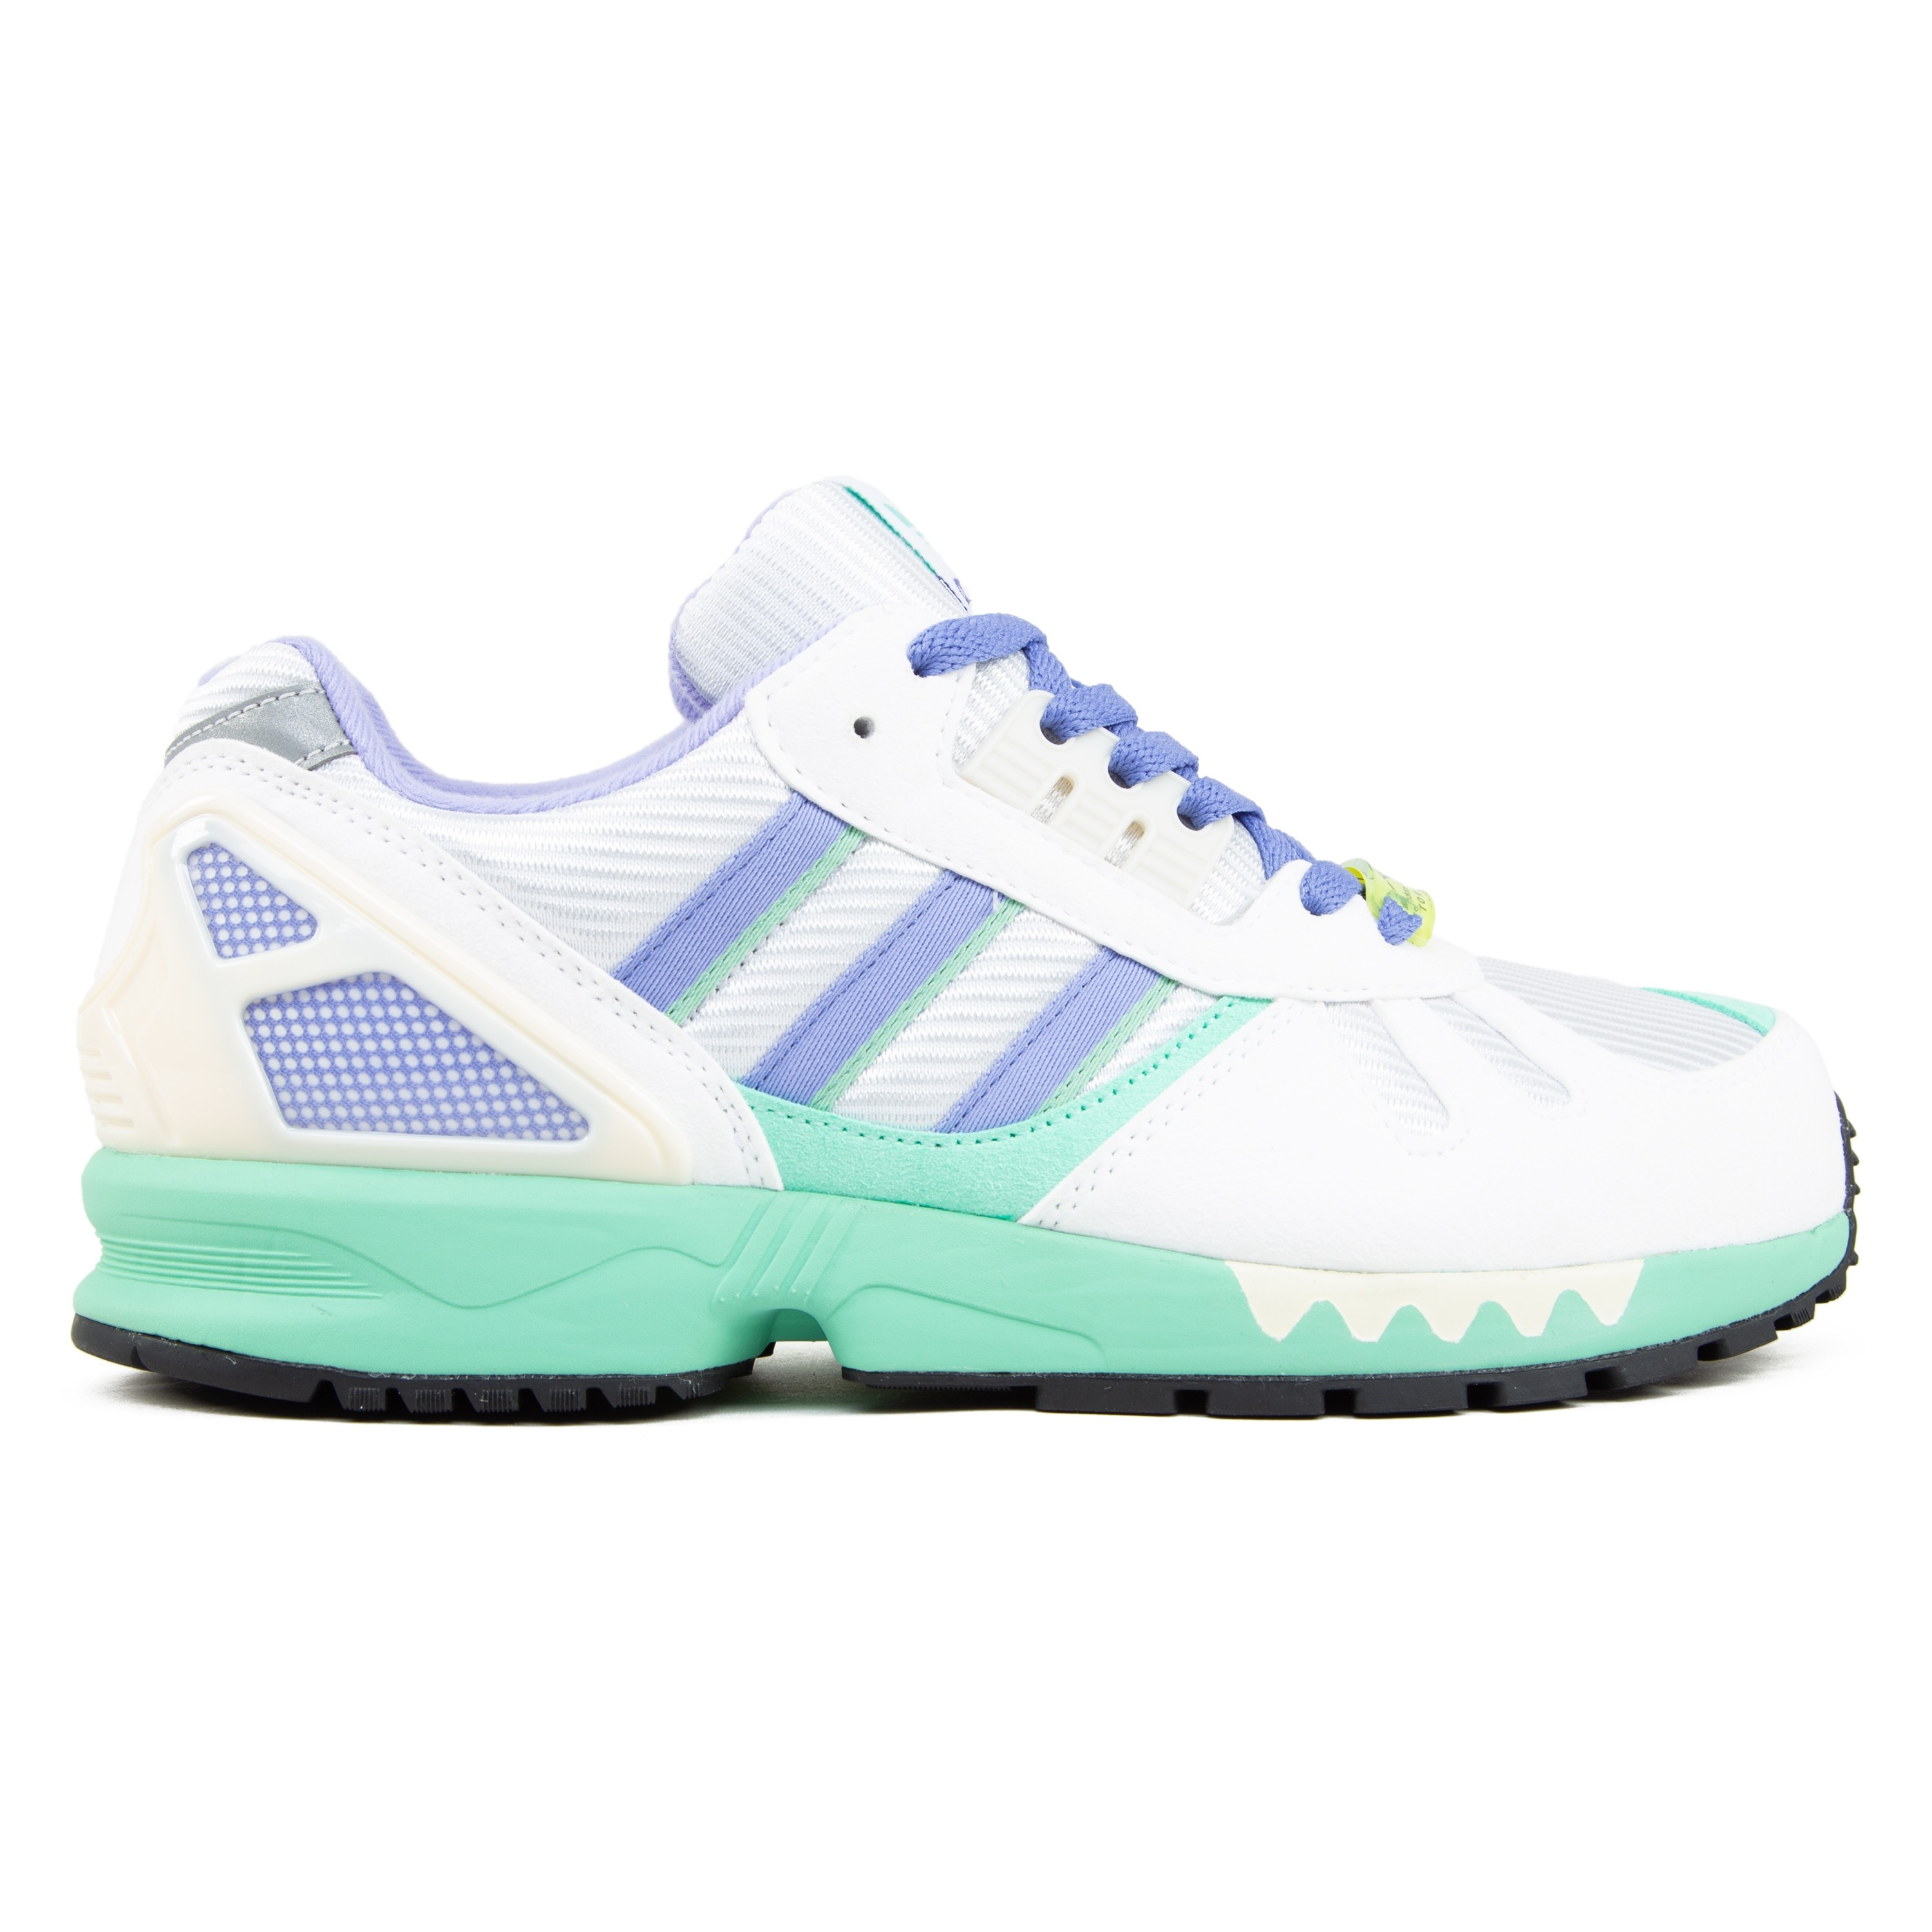 half off d543b 8433a adidas ZX 7000 OG G '30 Years of Torsion' (Footwear White/Crystal  White/Shock Yellow)